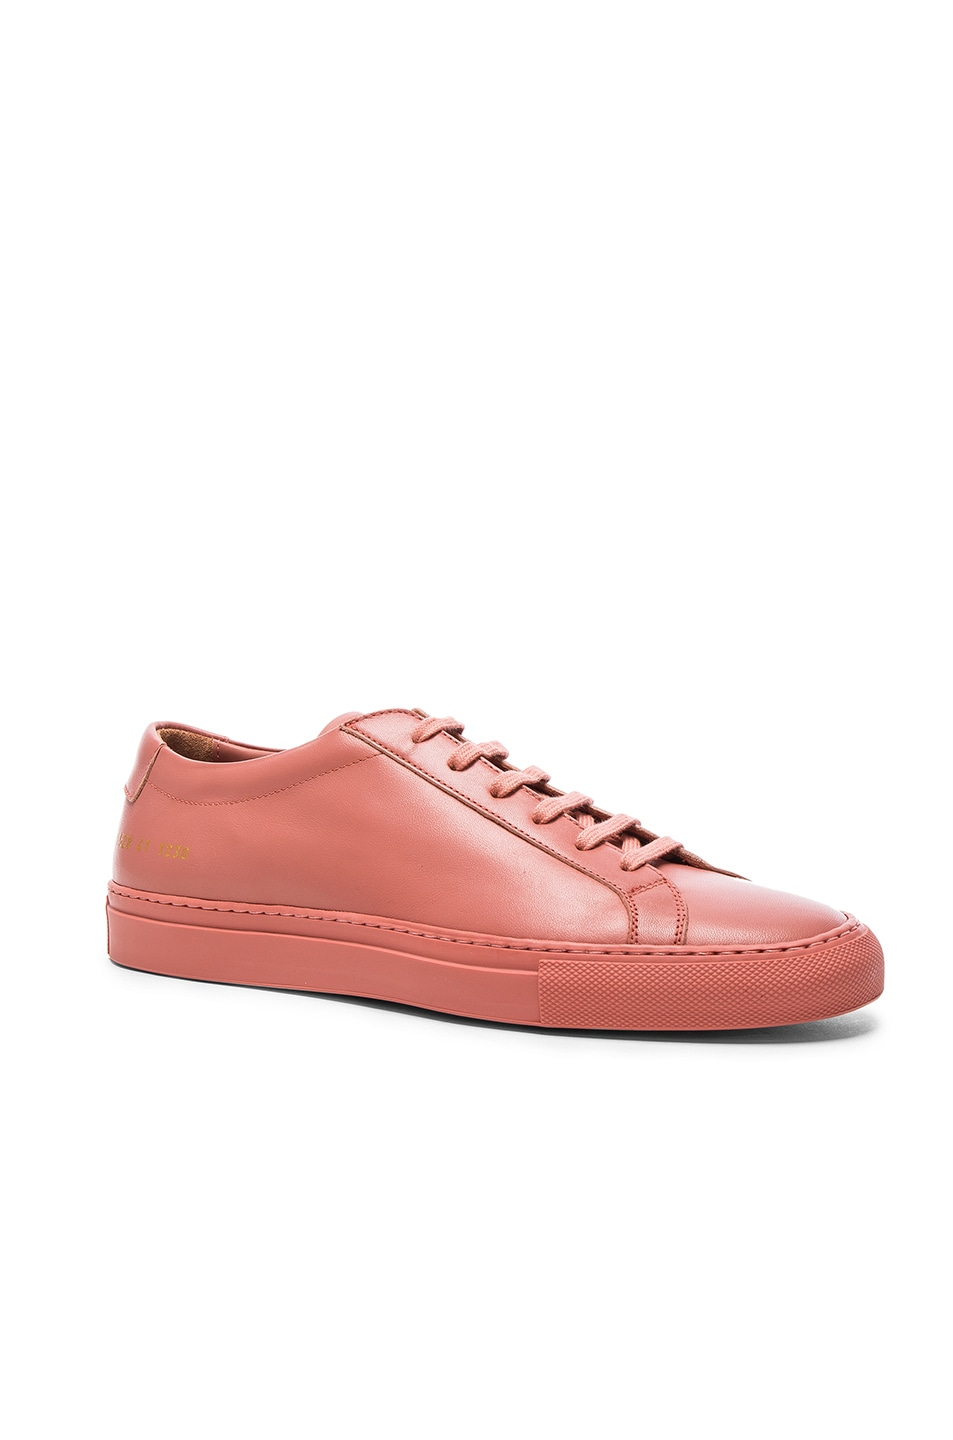 Image 1 of Common Projects Leather Original Achilles Low in Antique Rose